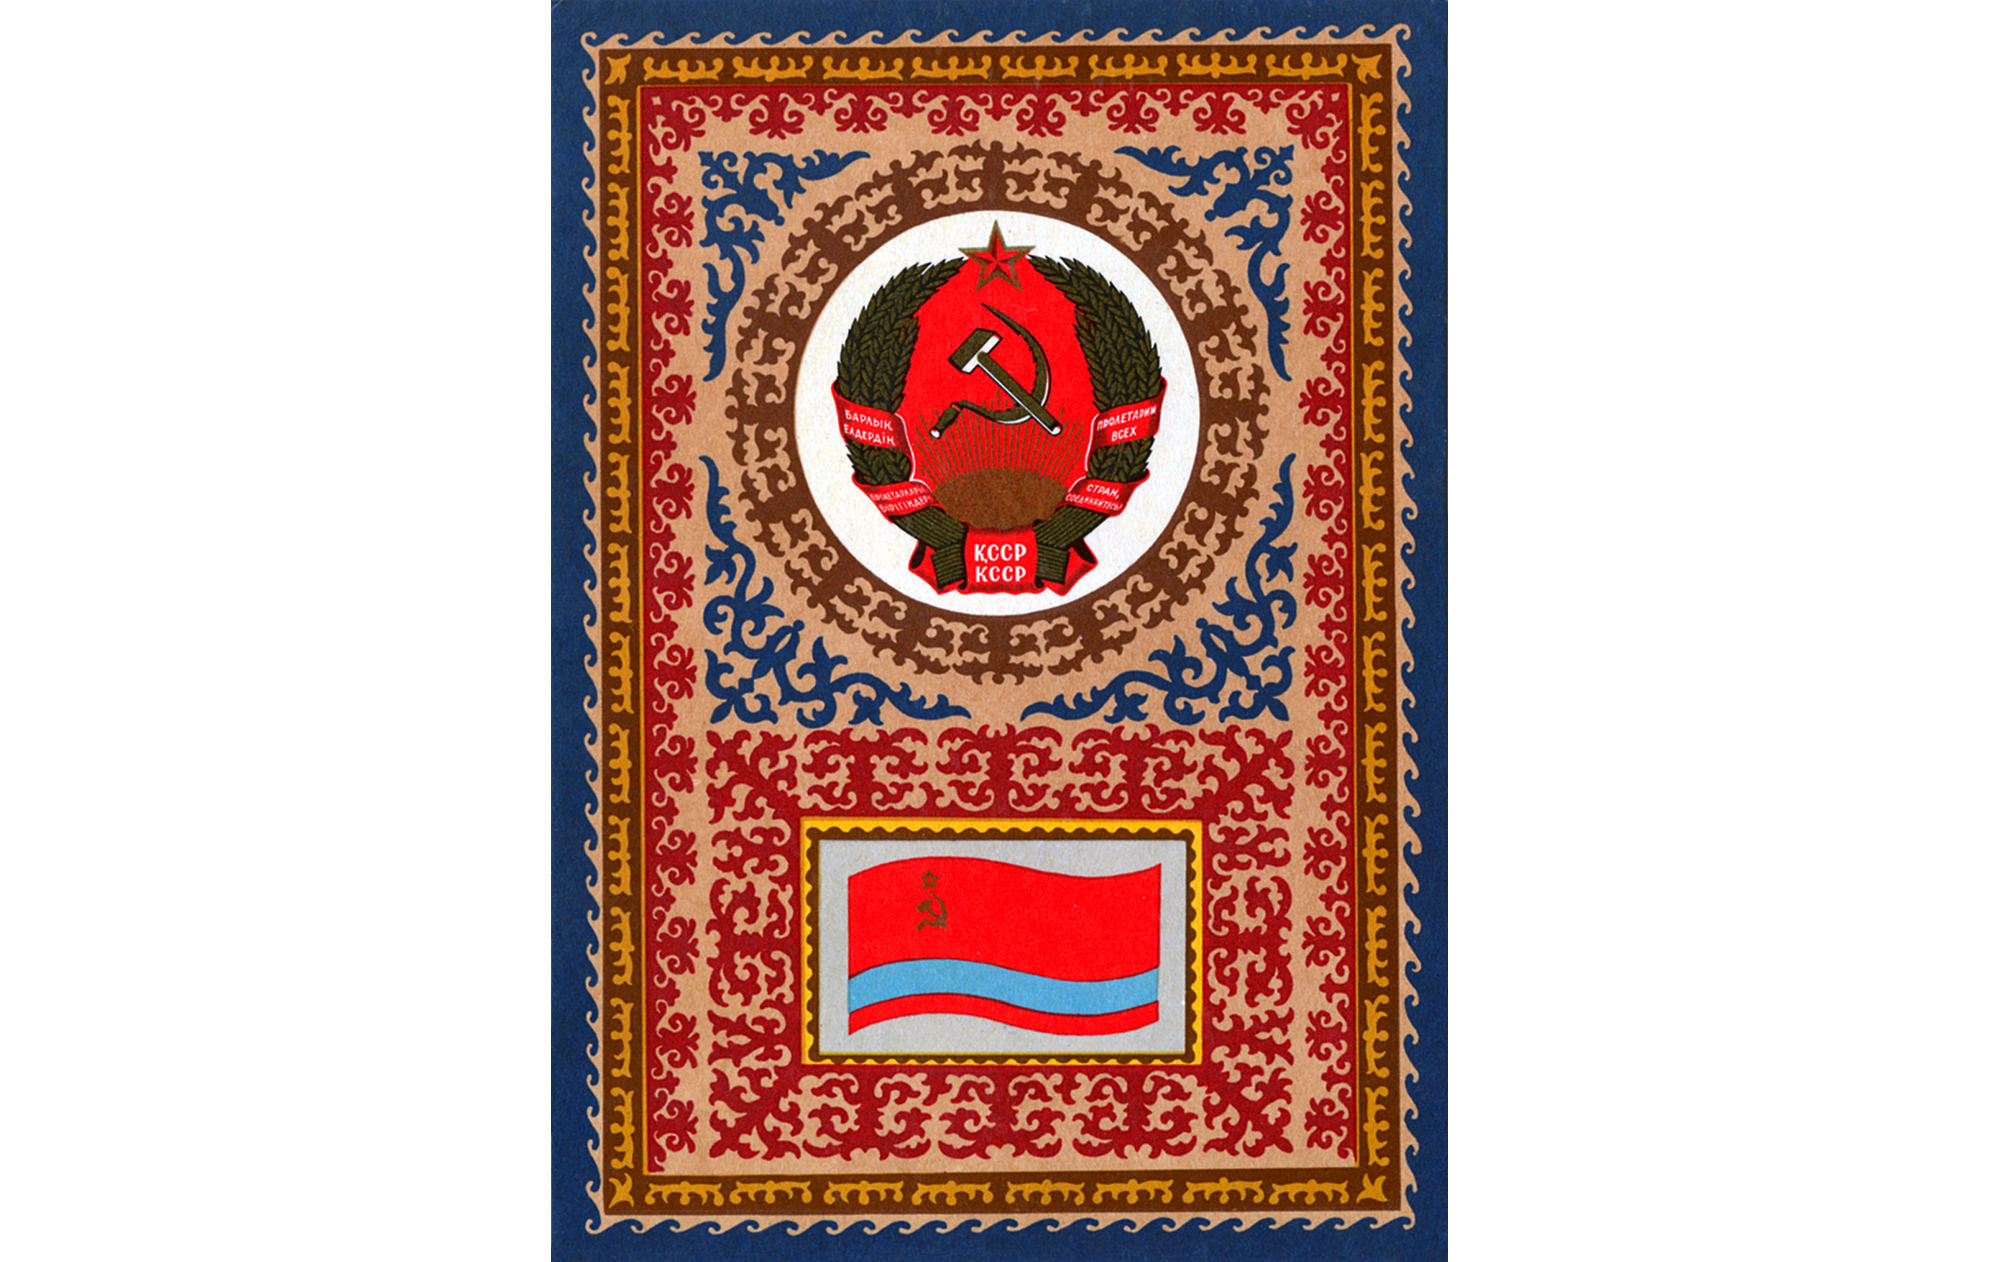 kazakhstan-emblem-and-flag-thumb-aimsc-112